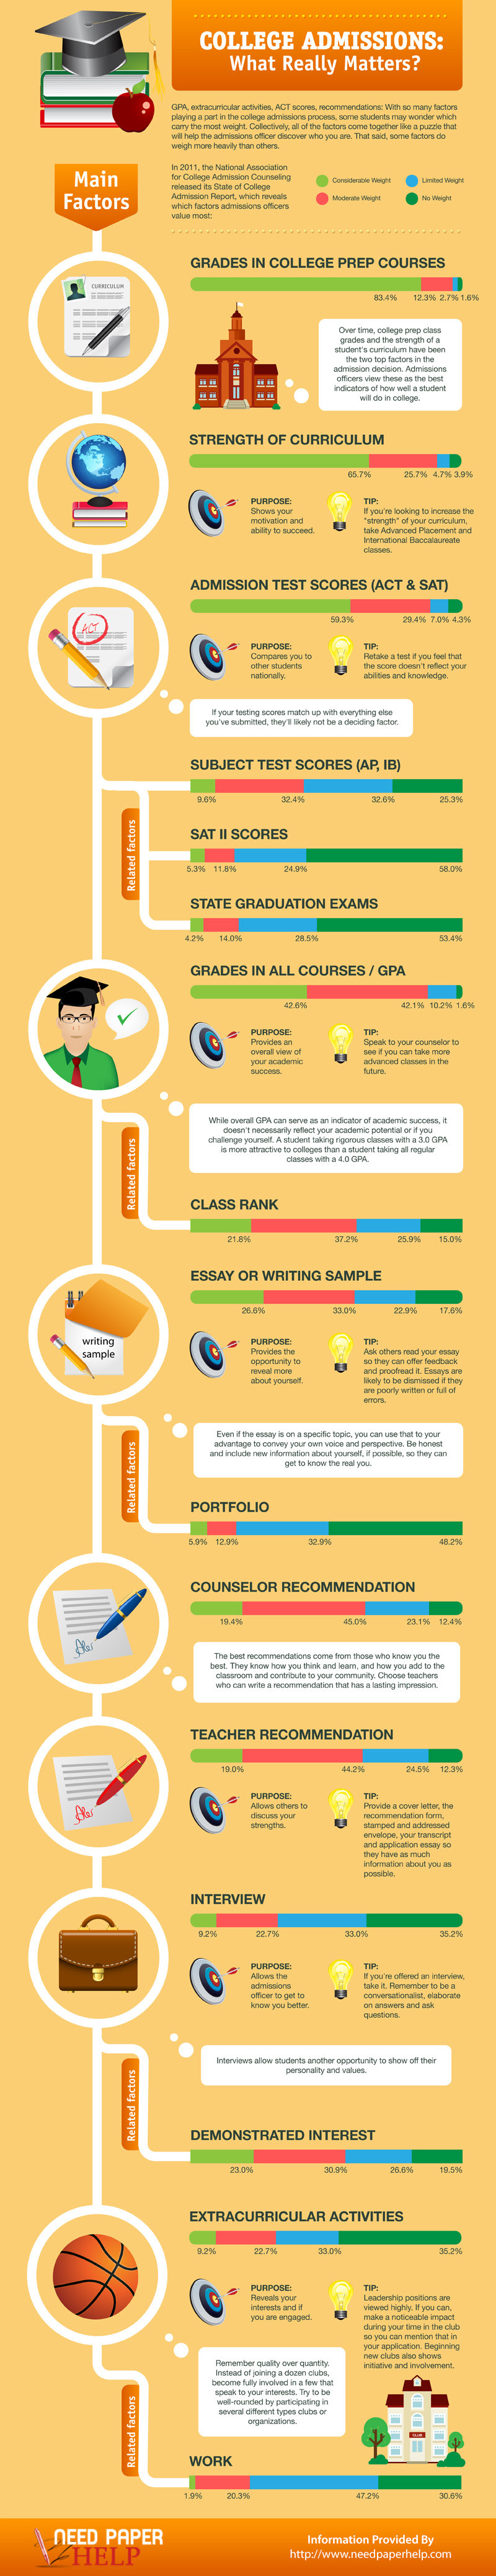 Infographic: College Admissions What Really Matters? #infographic